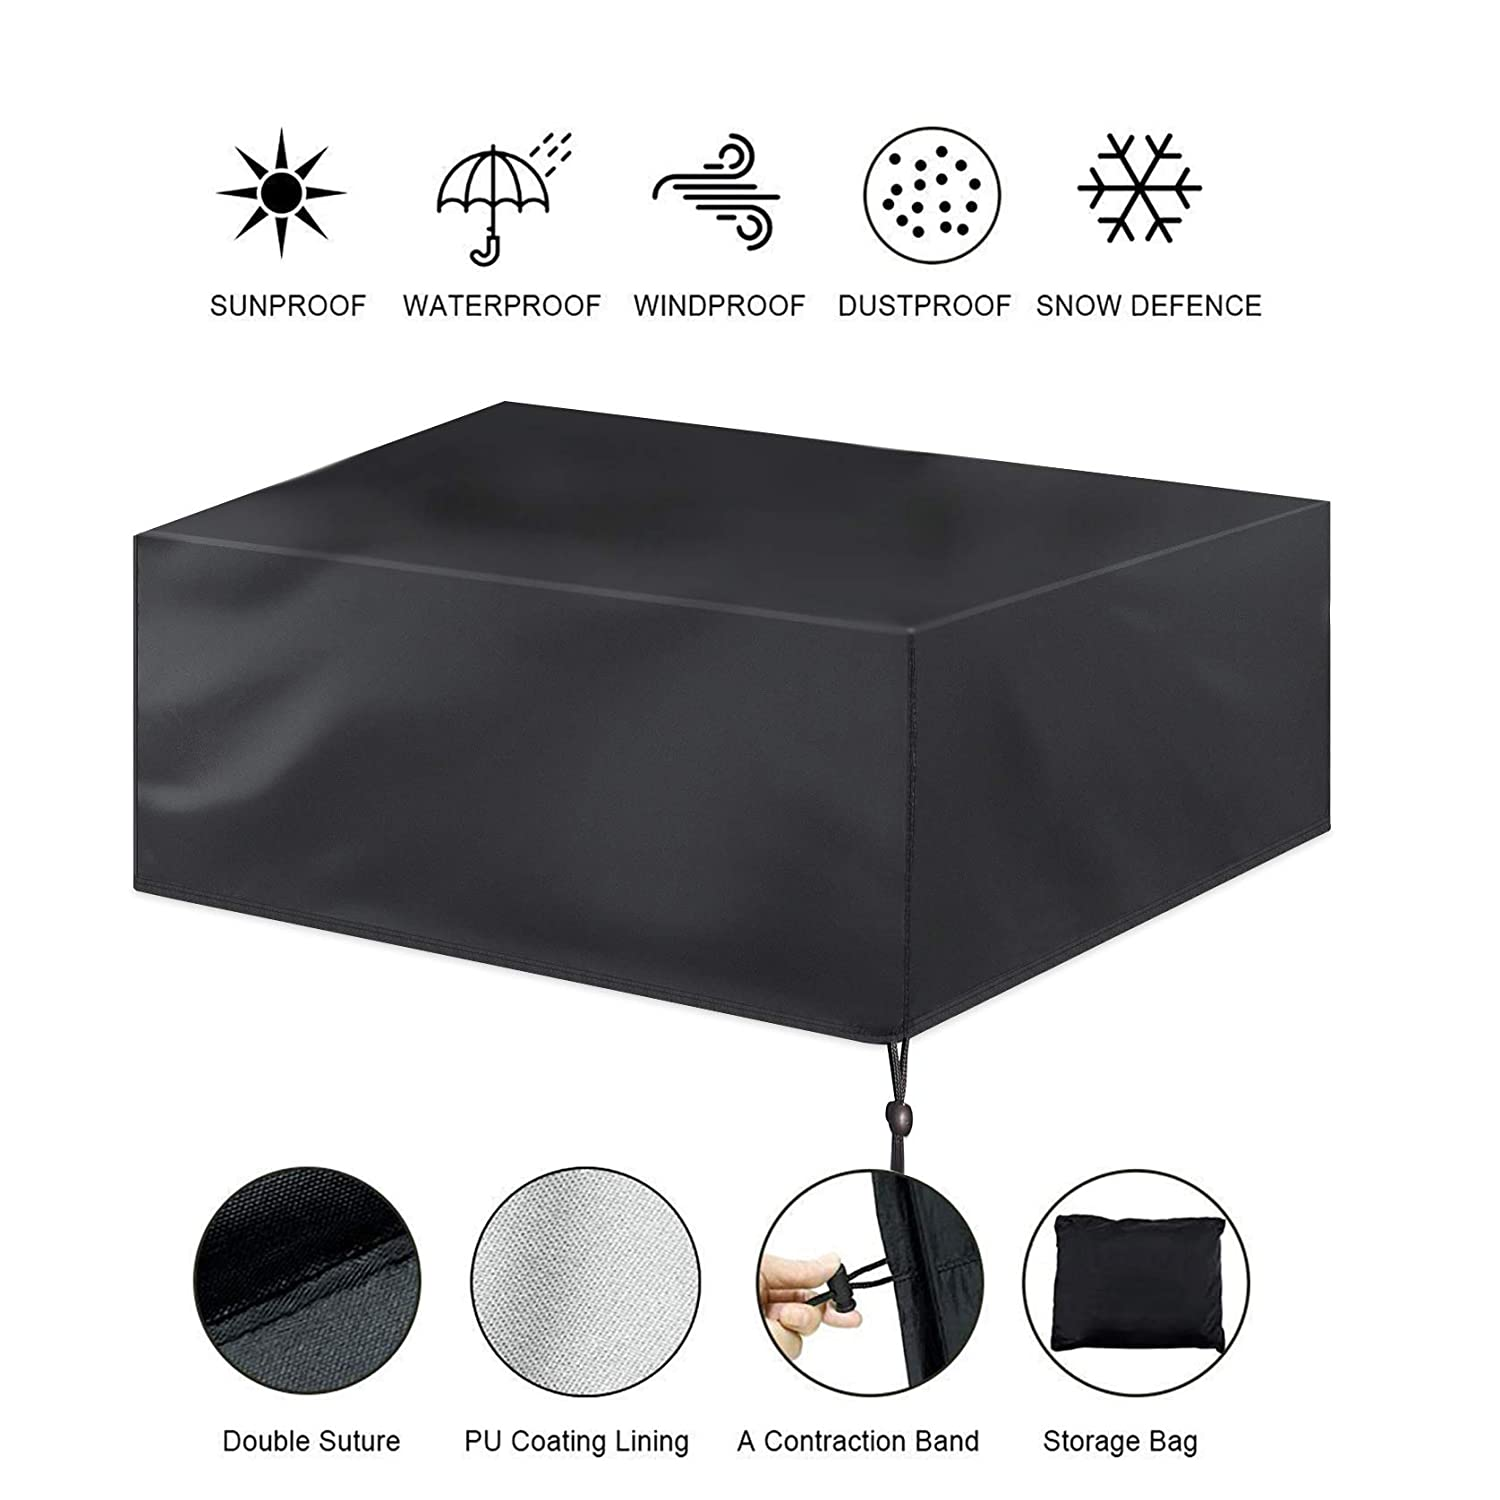 Luck Dawn Patio Furniture Covers, Waterproof Dust-Proof Outdoor Rectangular Table and Chair Set Cover with Straps Fasteners